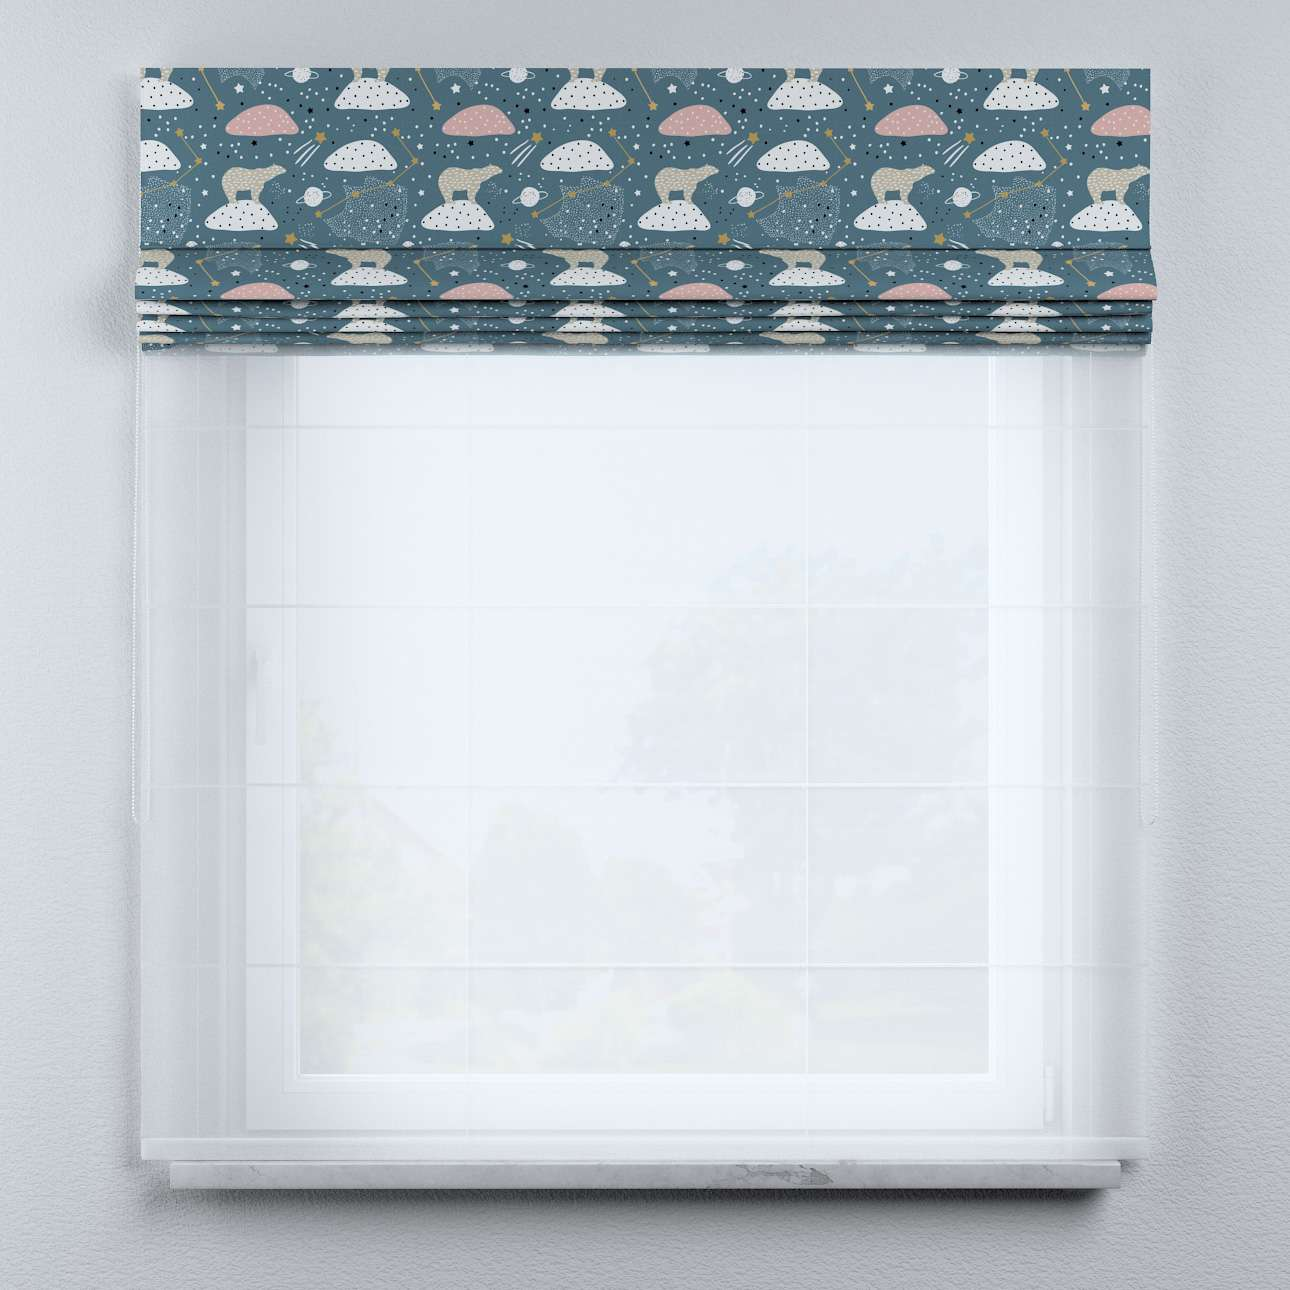 Voile and fabric roman blind (DUO II) in collection Magic Collection, fabric: 500-45